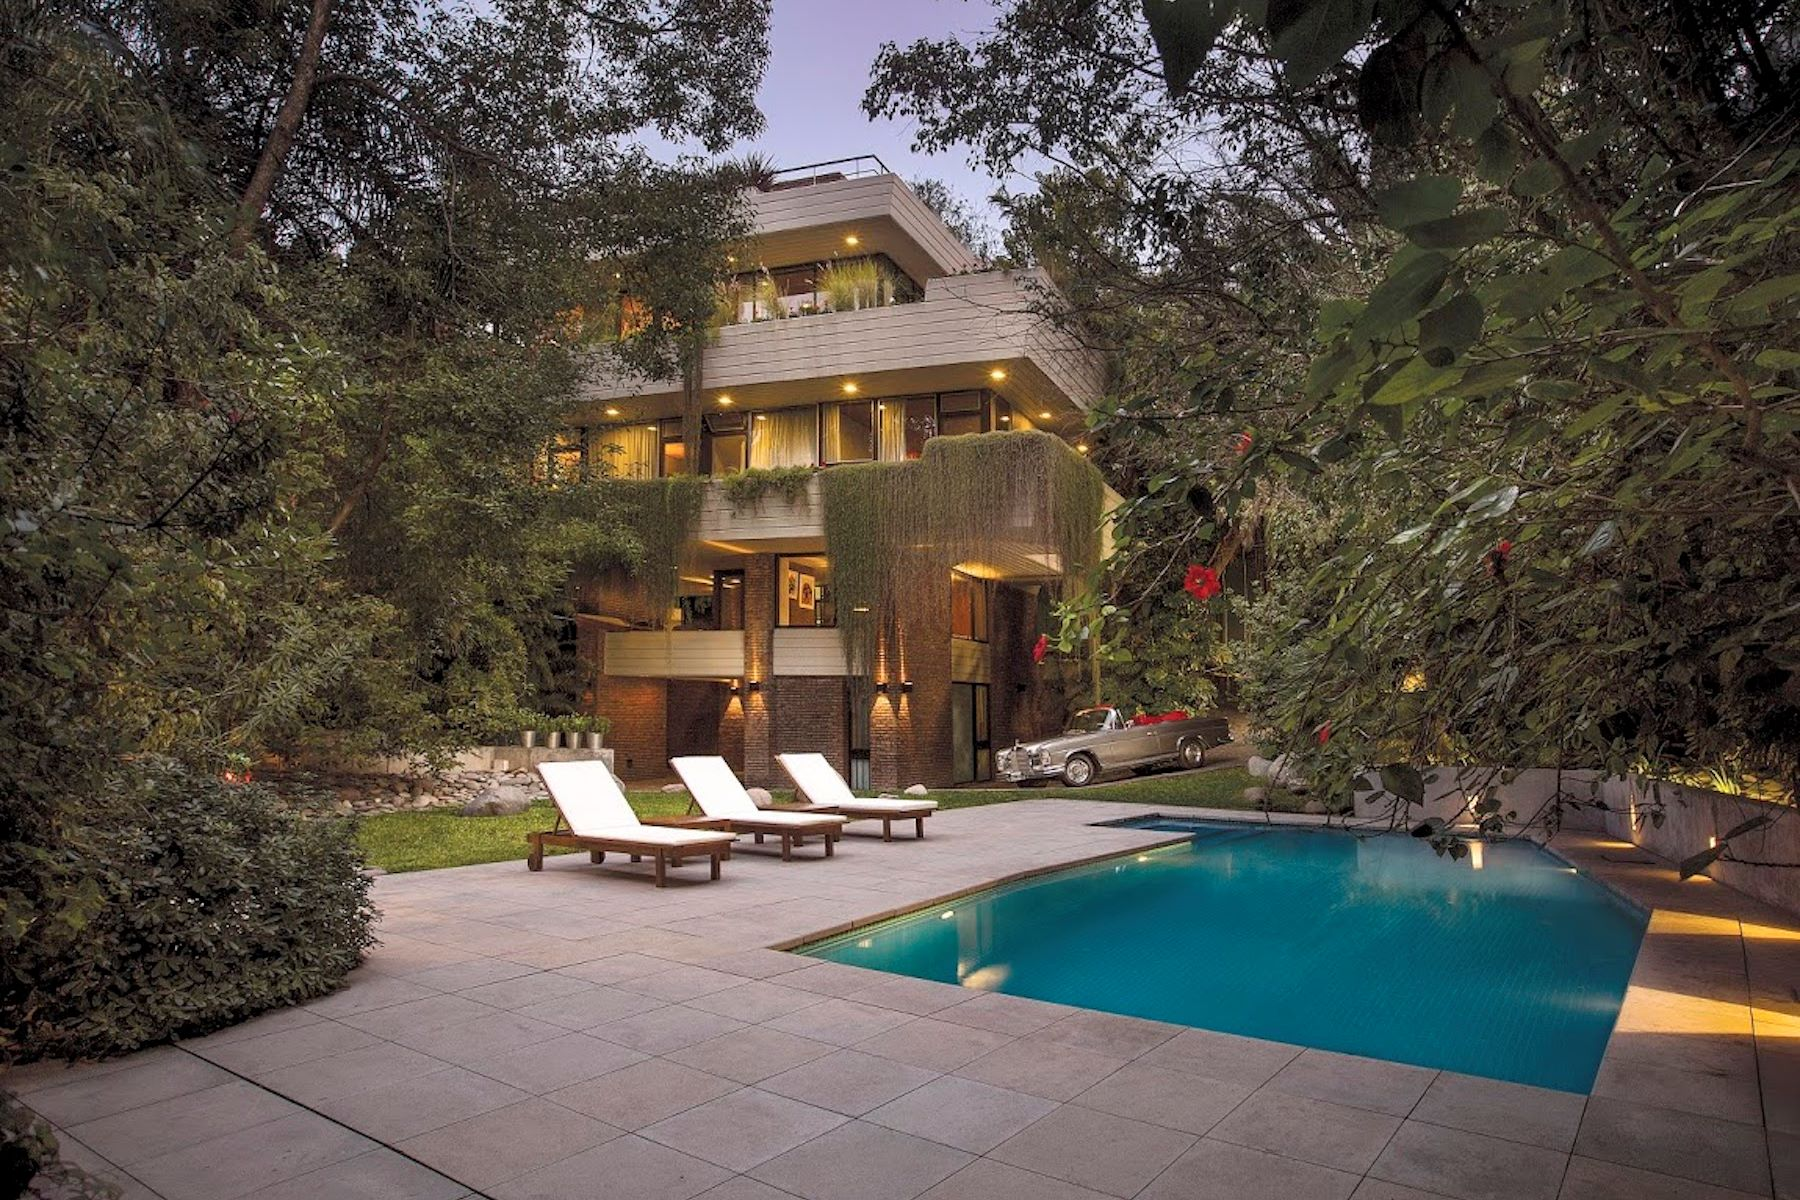 Single Family Homes for Sale at House inspired by the famous Fallingwater House by F.L. Wright Vito Dumas 400 Victoria Other Buenos Aires, Buenos Aires B1644 Argentina